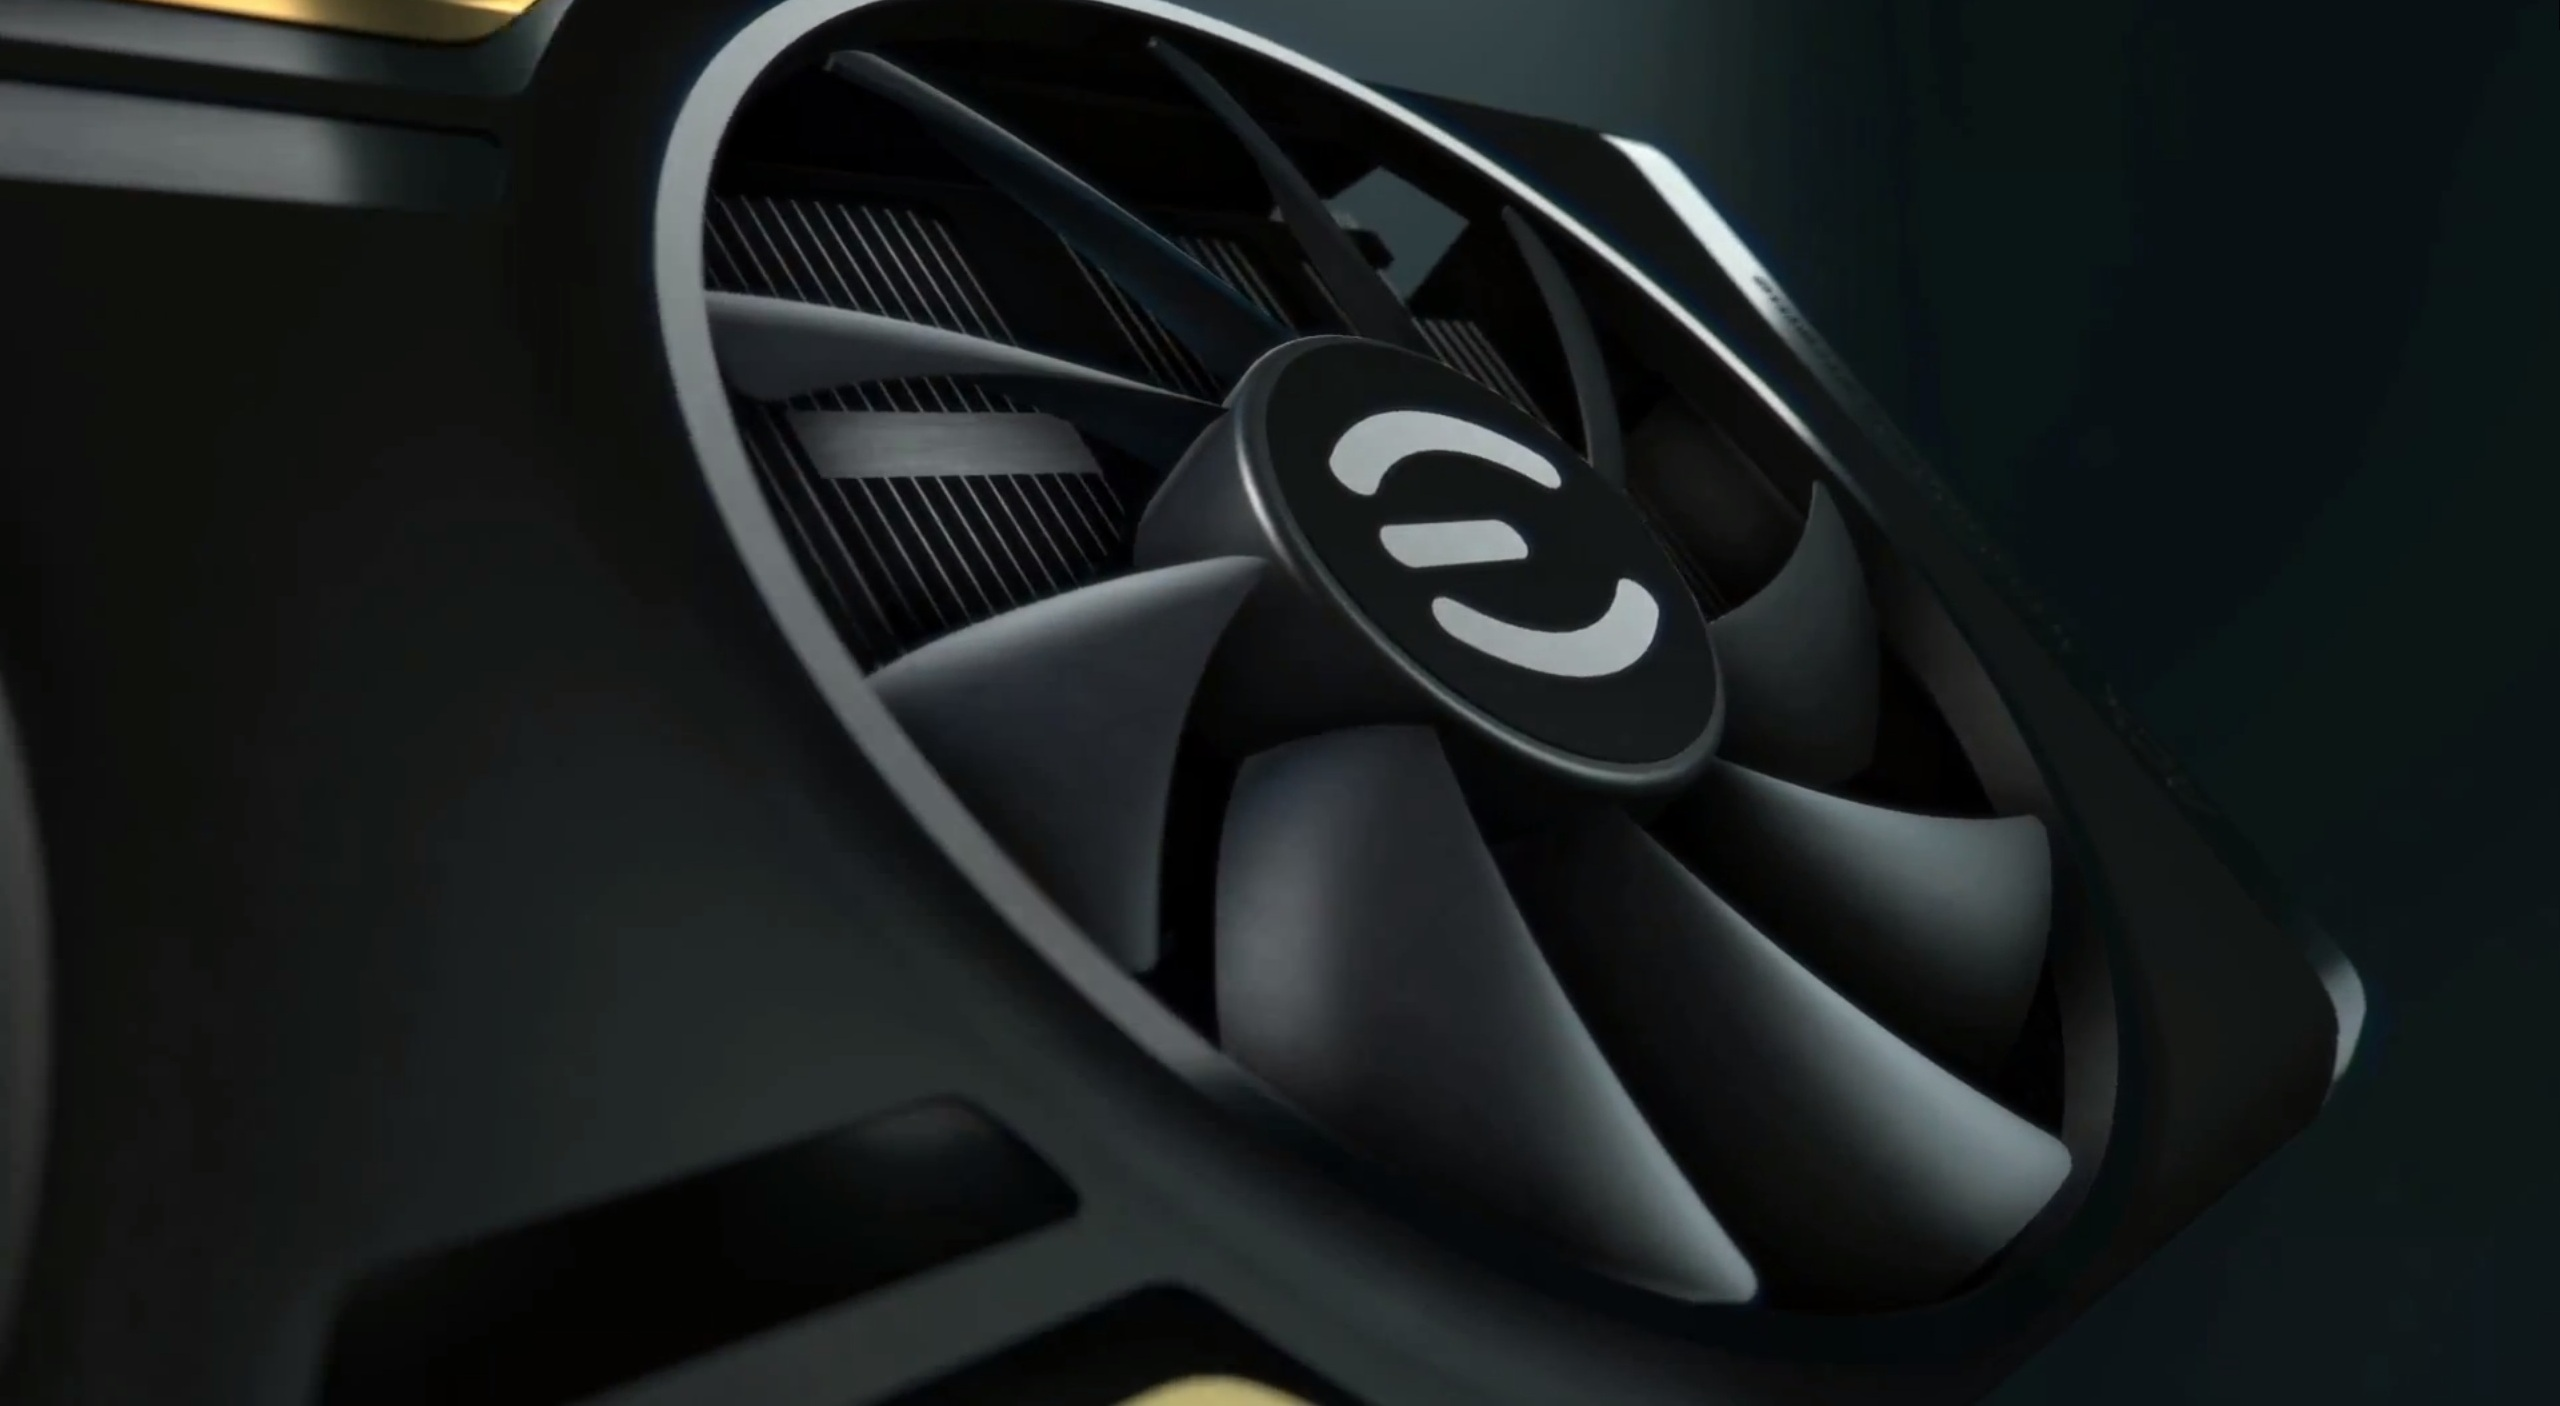 Evga Wallpapers 1080p - Wickedsa com